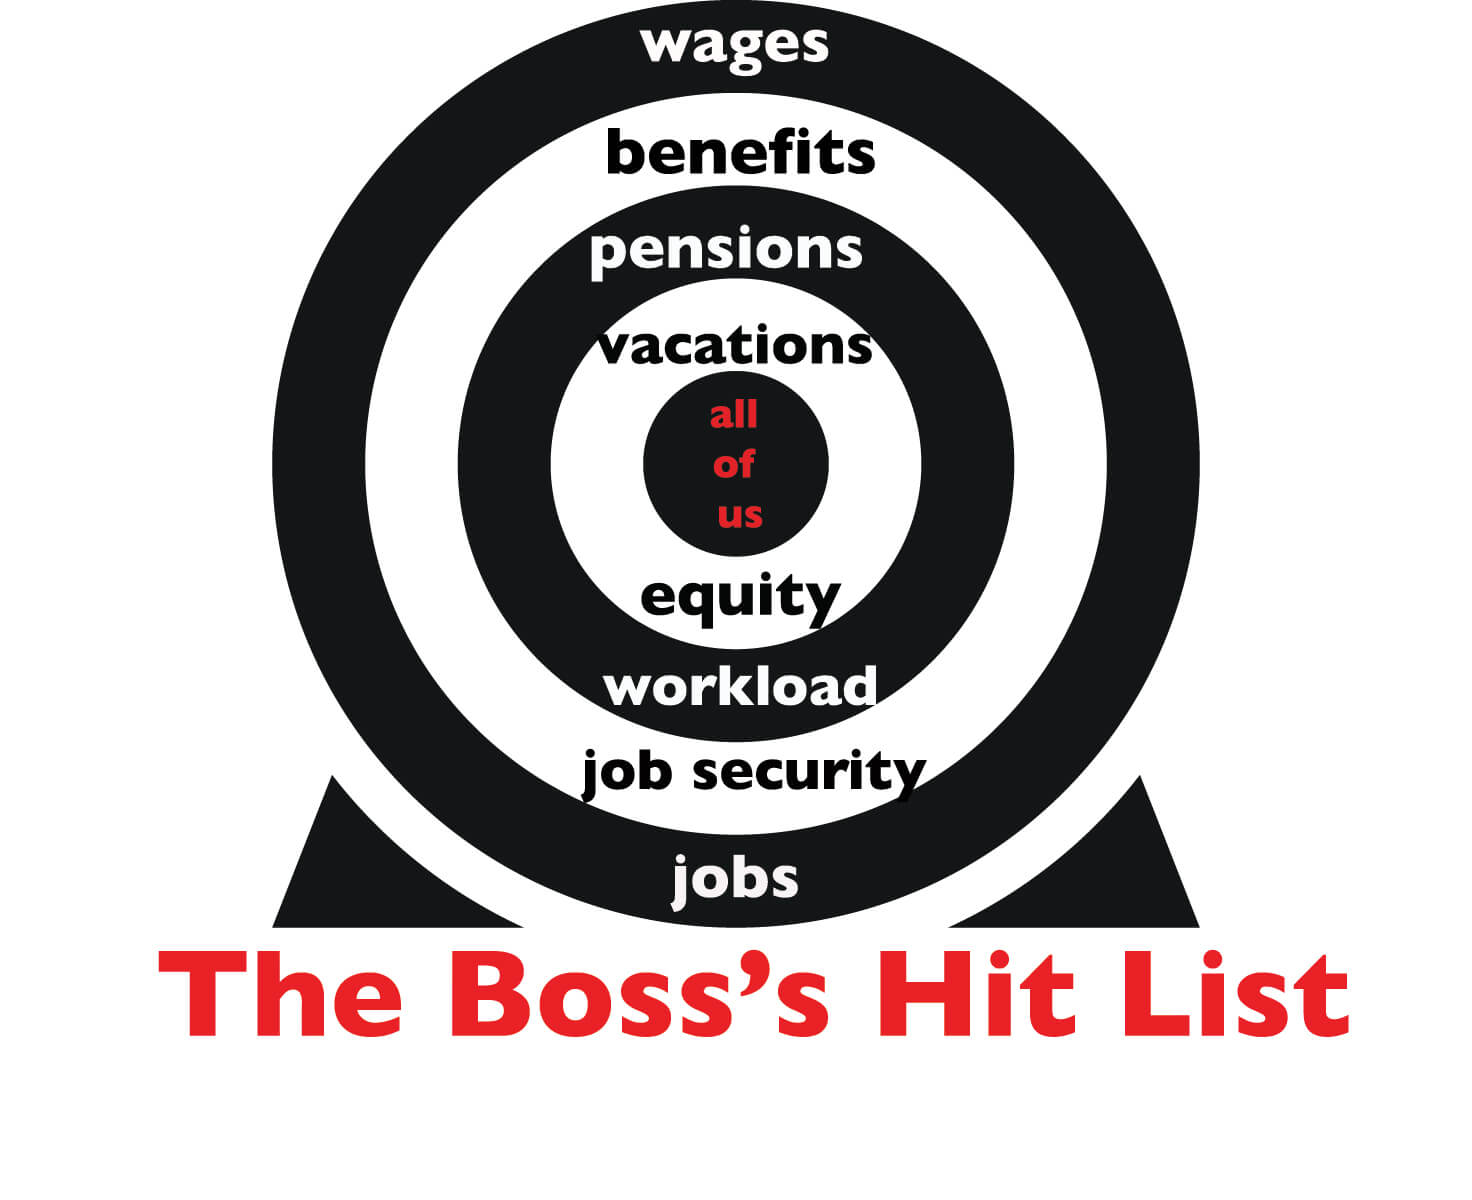 Image of a black and white archery target entitled 'The Boss's Hit List.' The words 'wages, benefits, pensions, vacations, equity, workload, job security, and jobs' are written in the target's rings. The bull's eye contains the words 'all of us' in red.